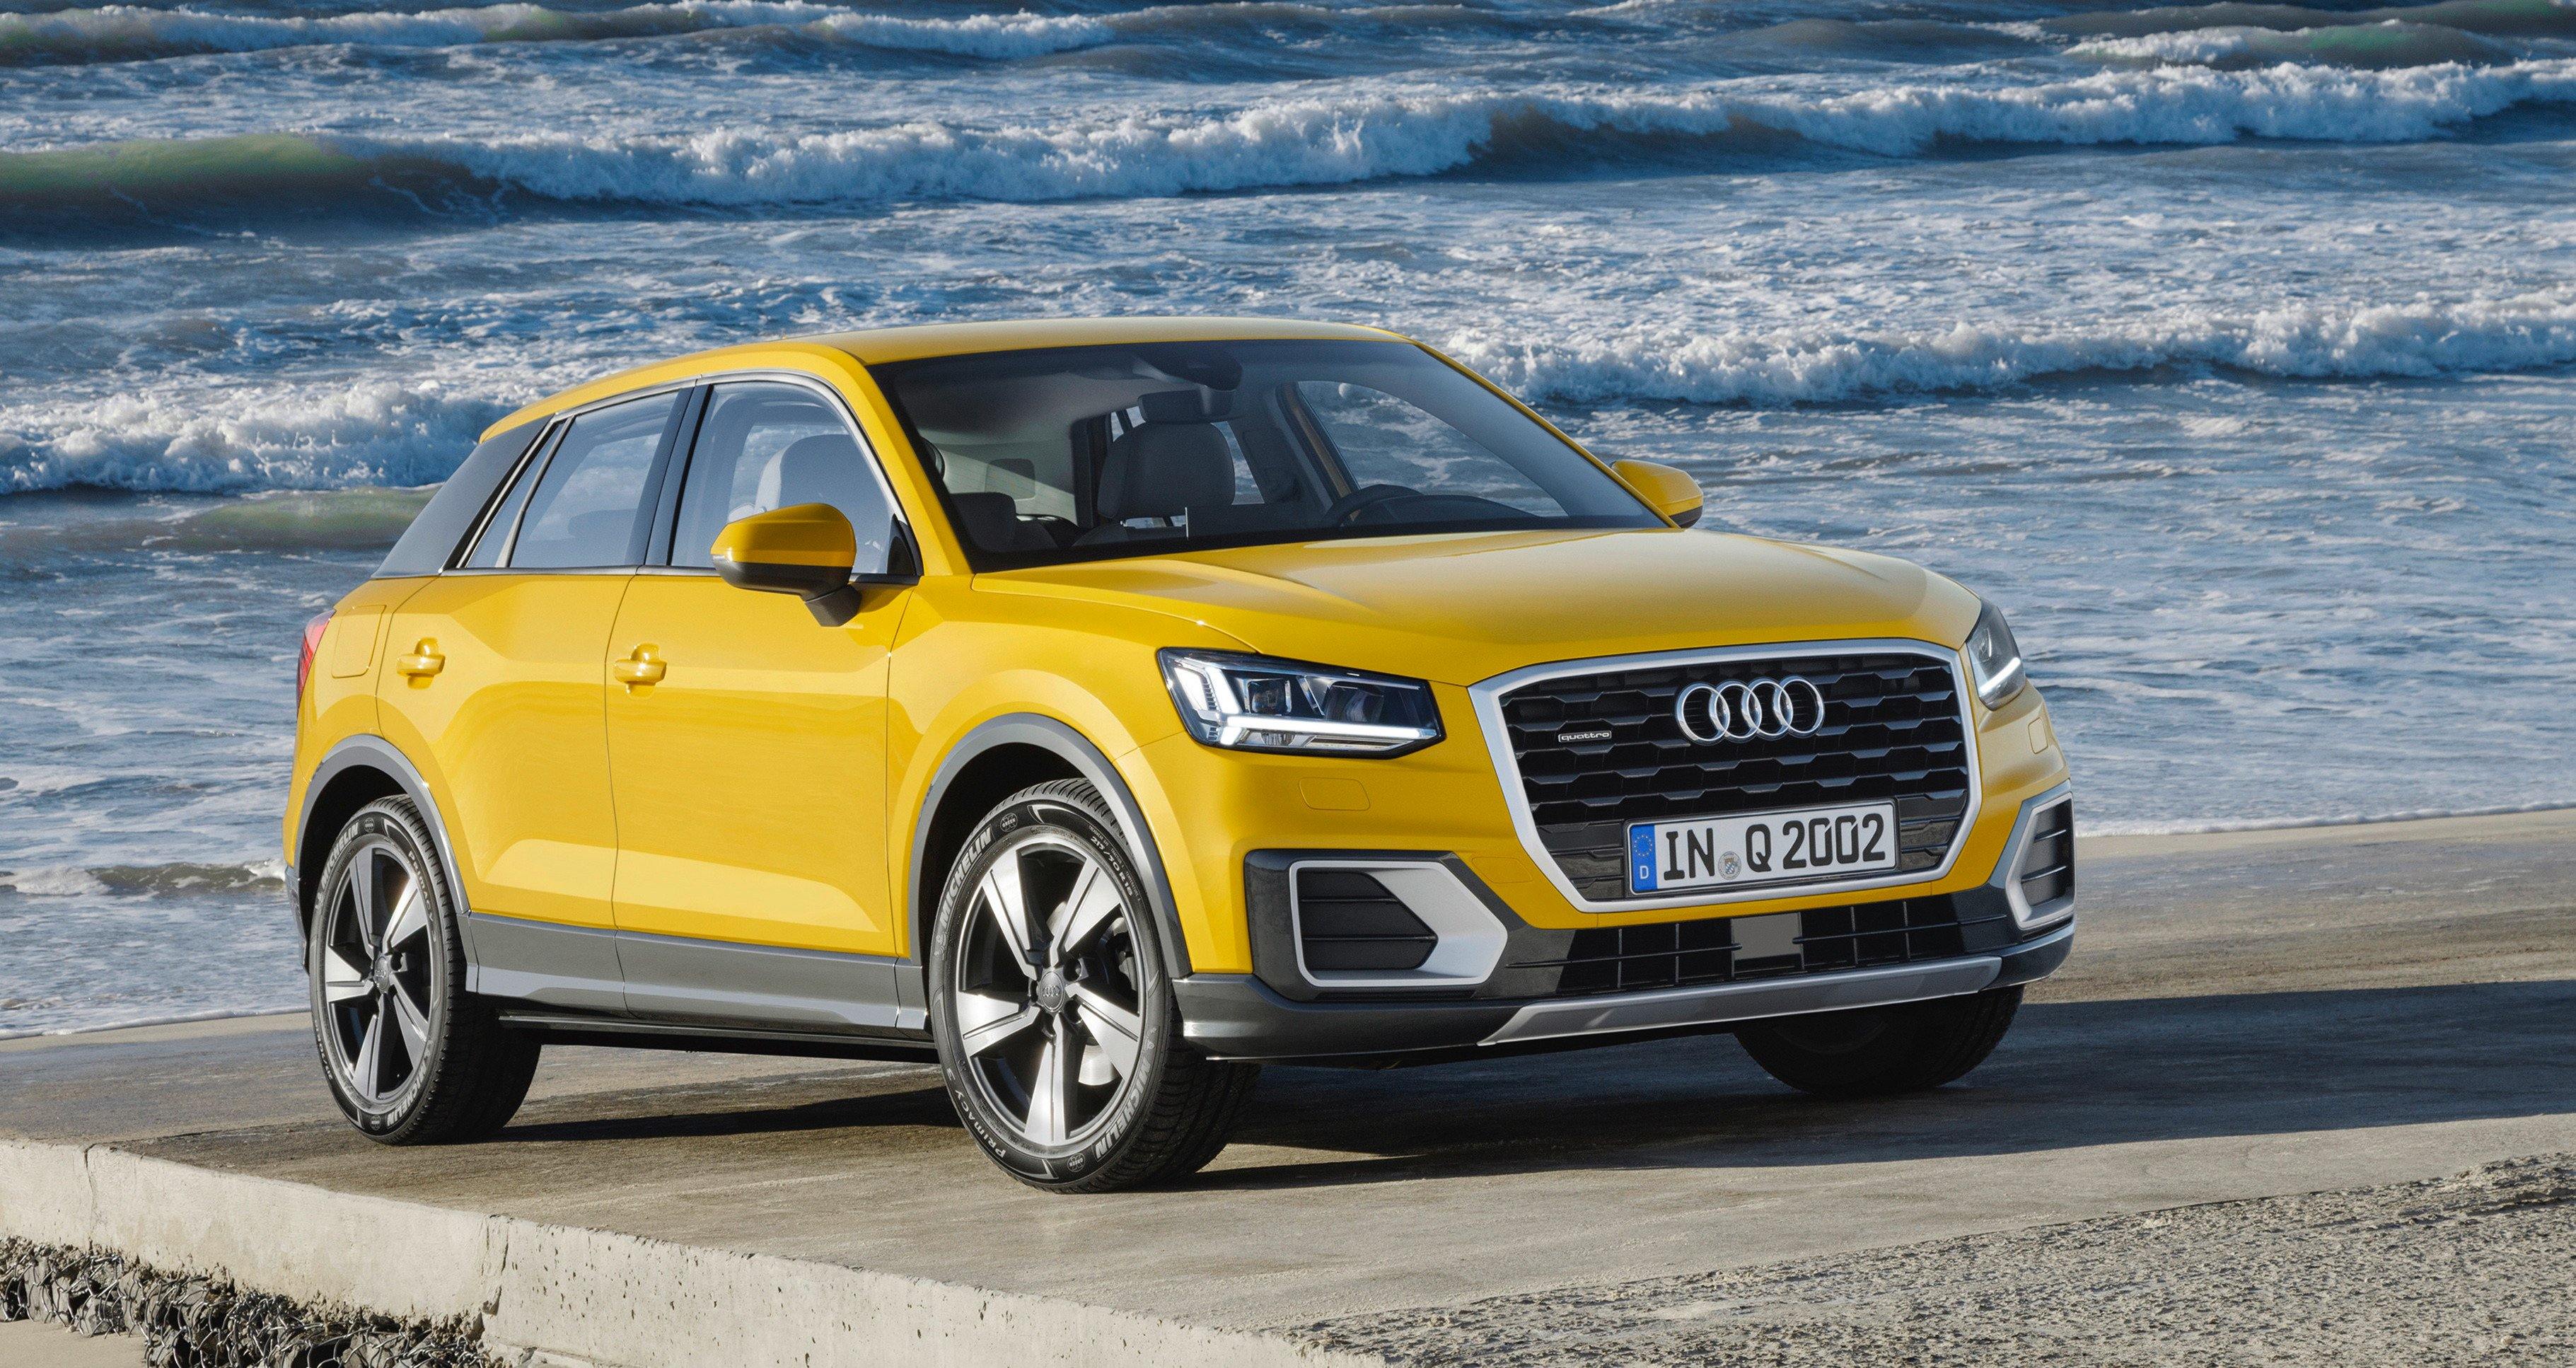 2017 audi q2 revealed australian launch confirmed photos 1 of 16. Black Bedroom Furniture Sets. Home Design Ideas